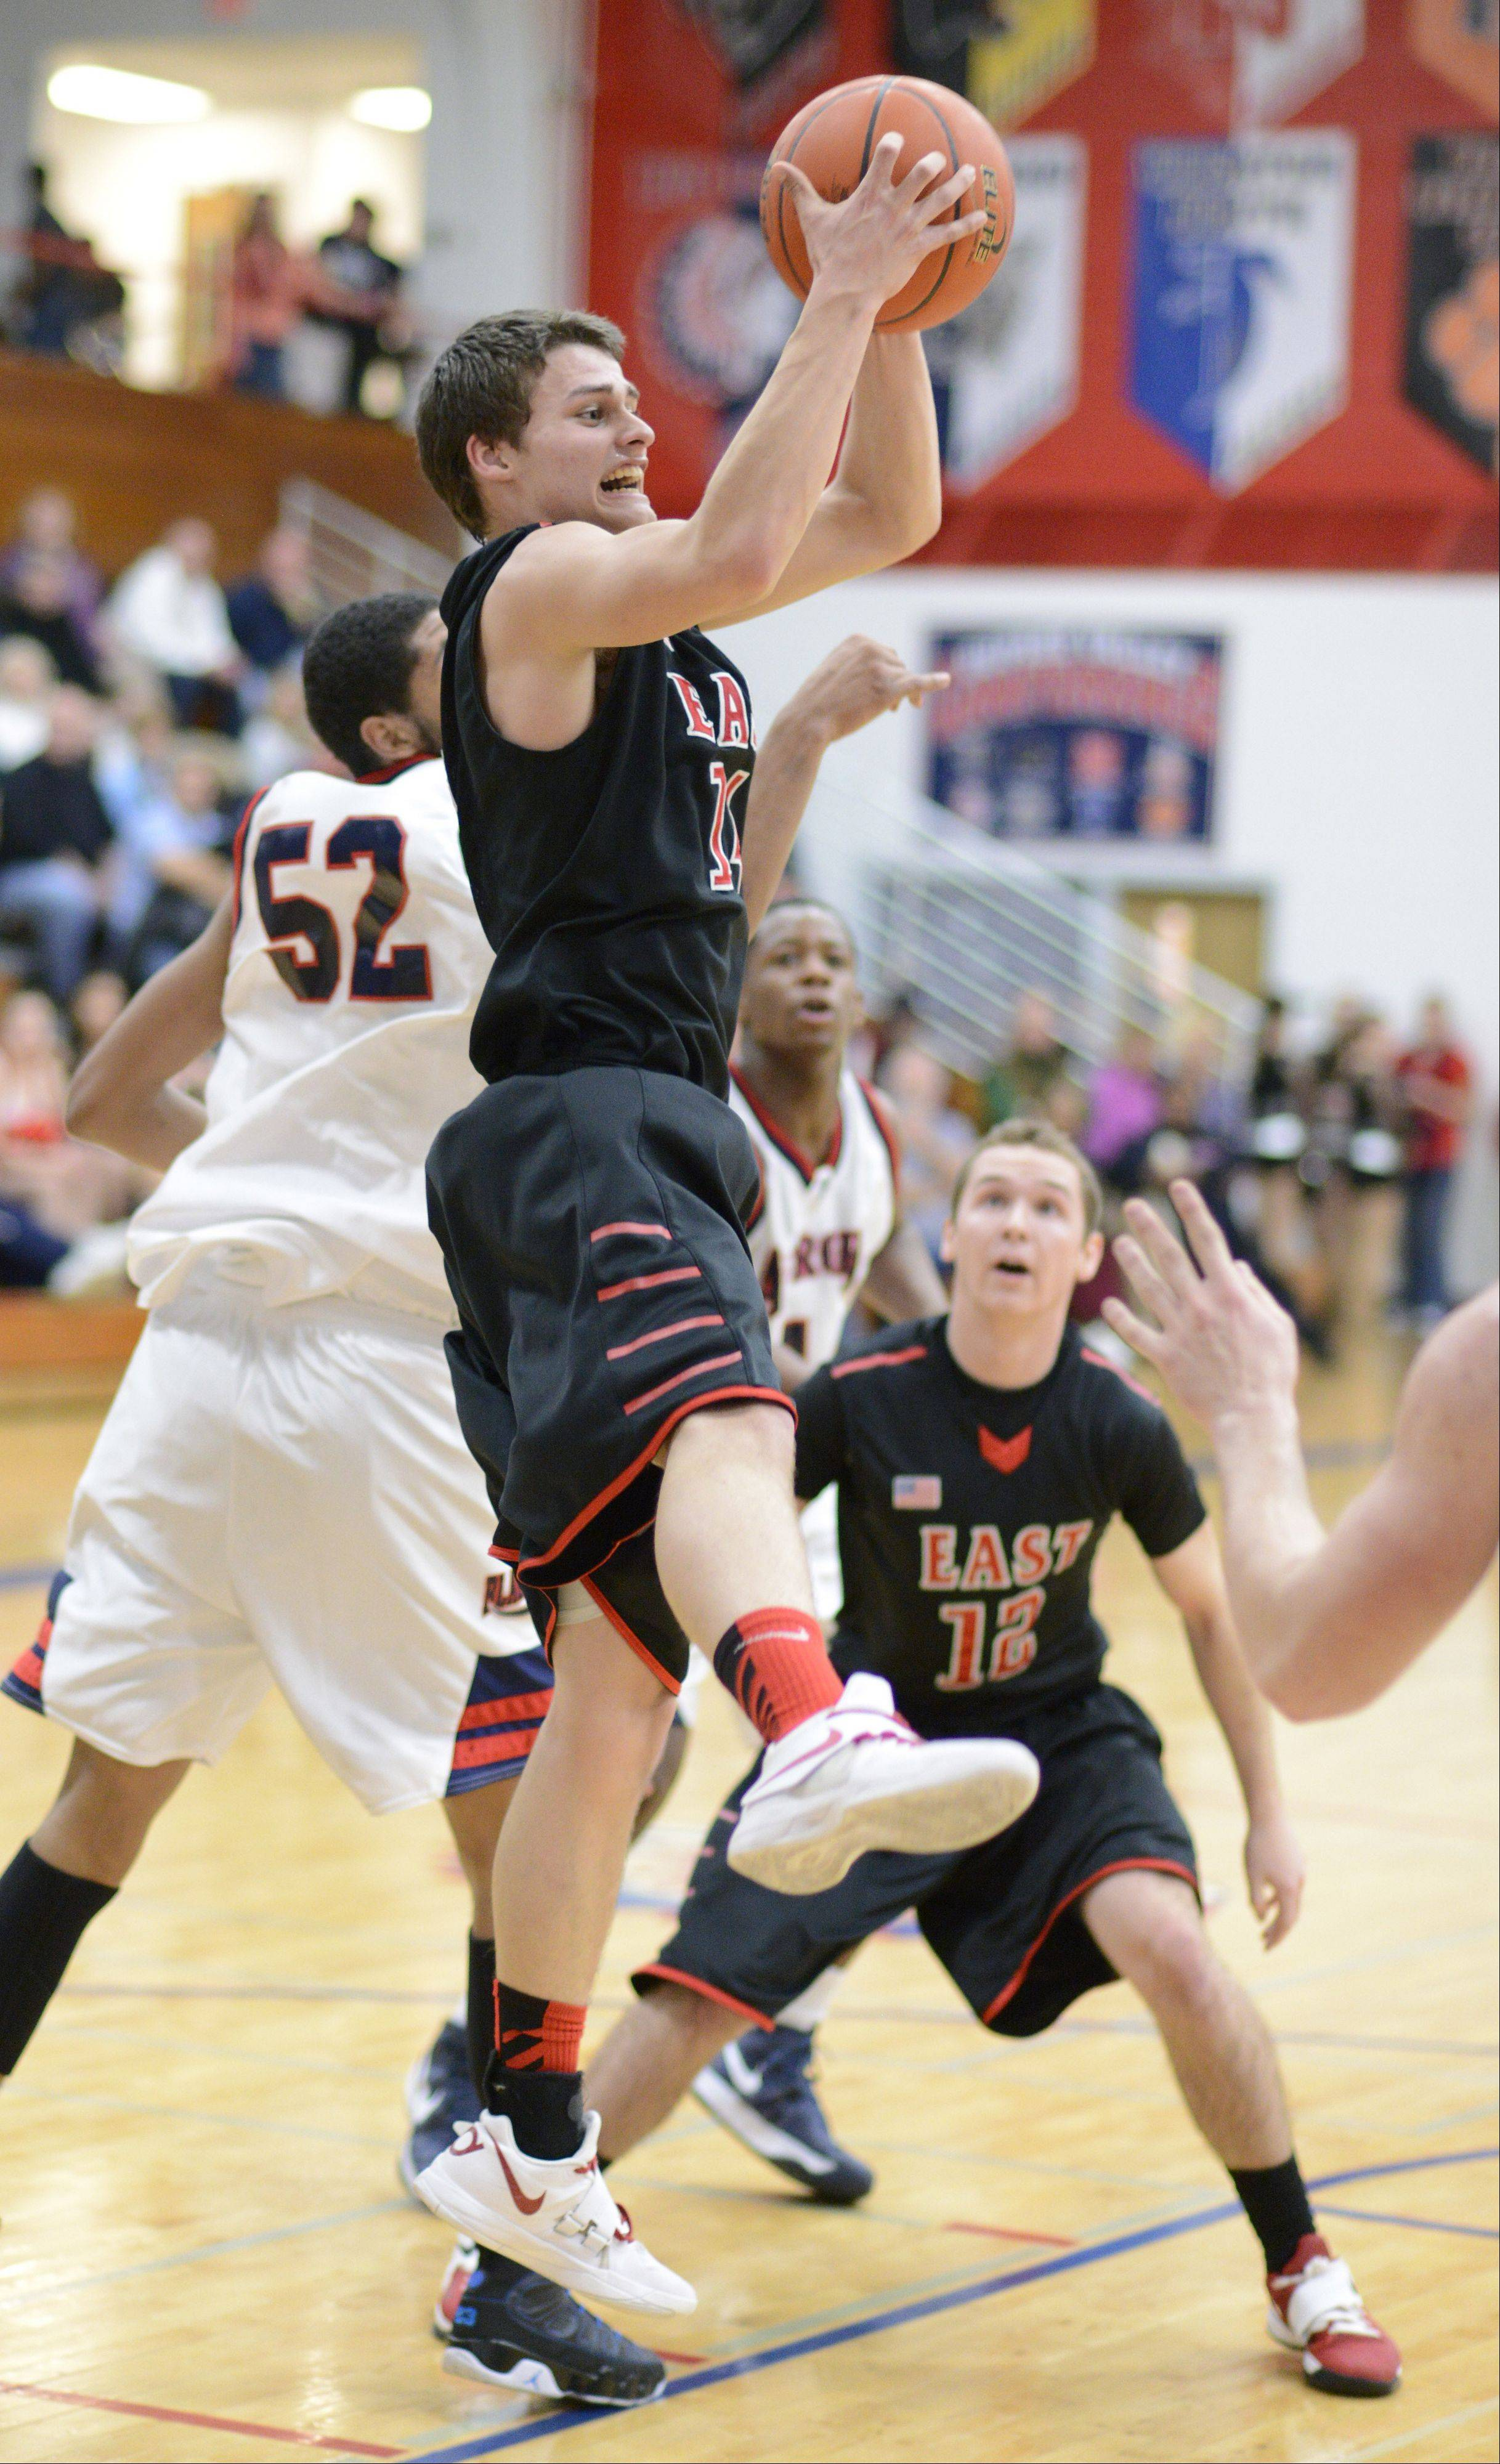 Glenbard East's Mike Kjeldsen snatches a rebound in front of West Aurora's Joshua McAuley in the third quarter on Wednesday, February 20.